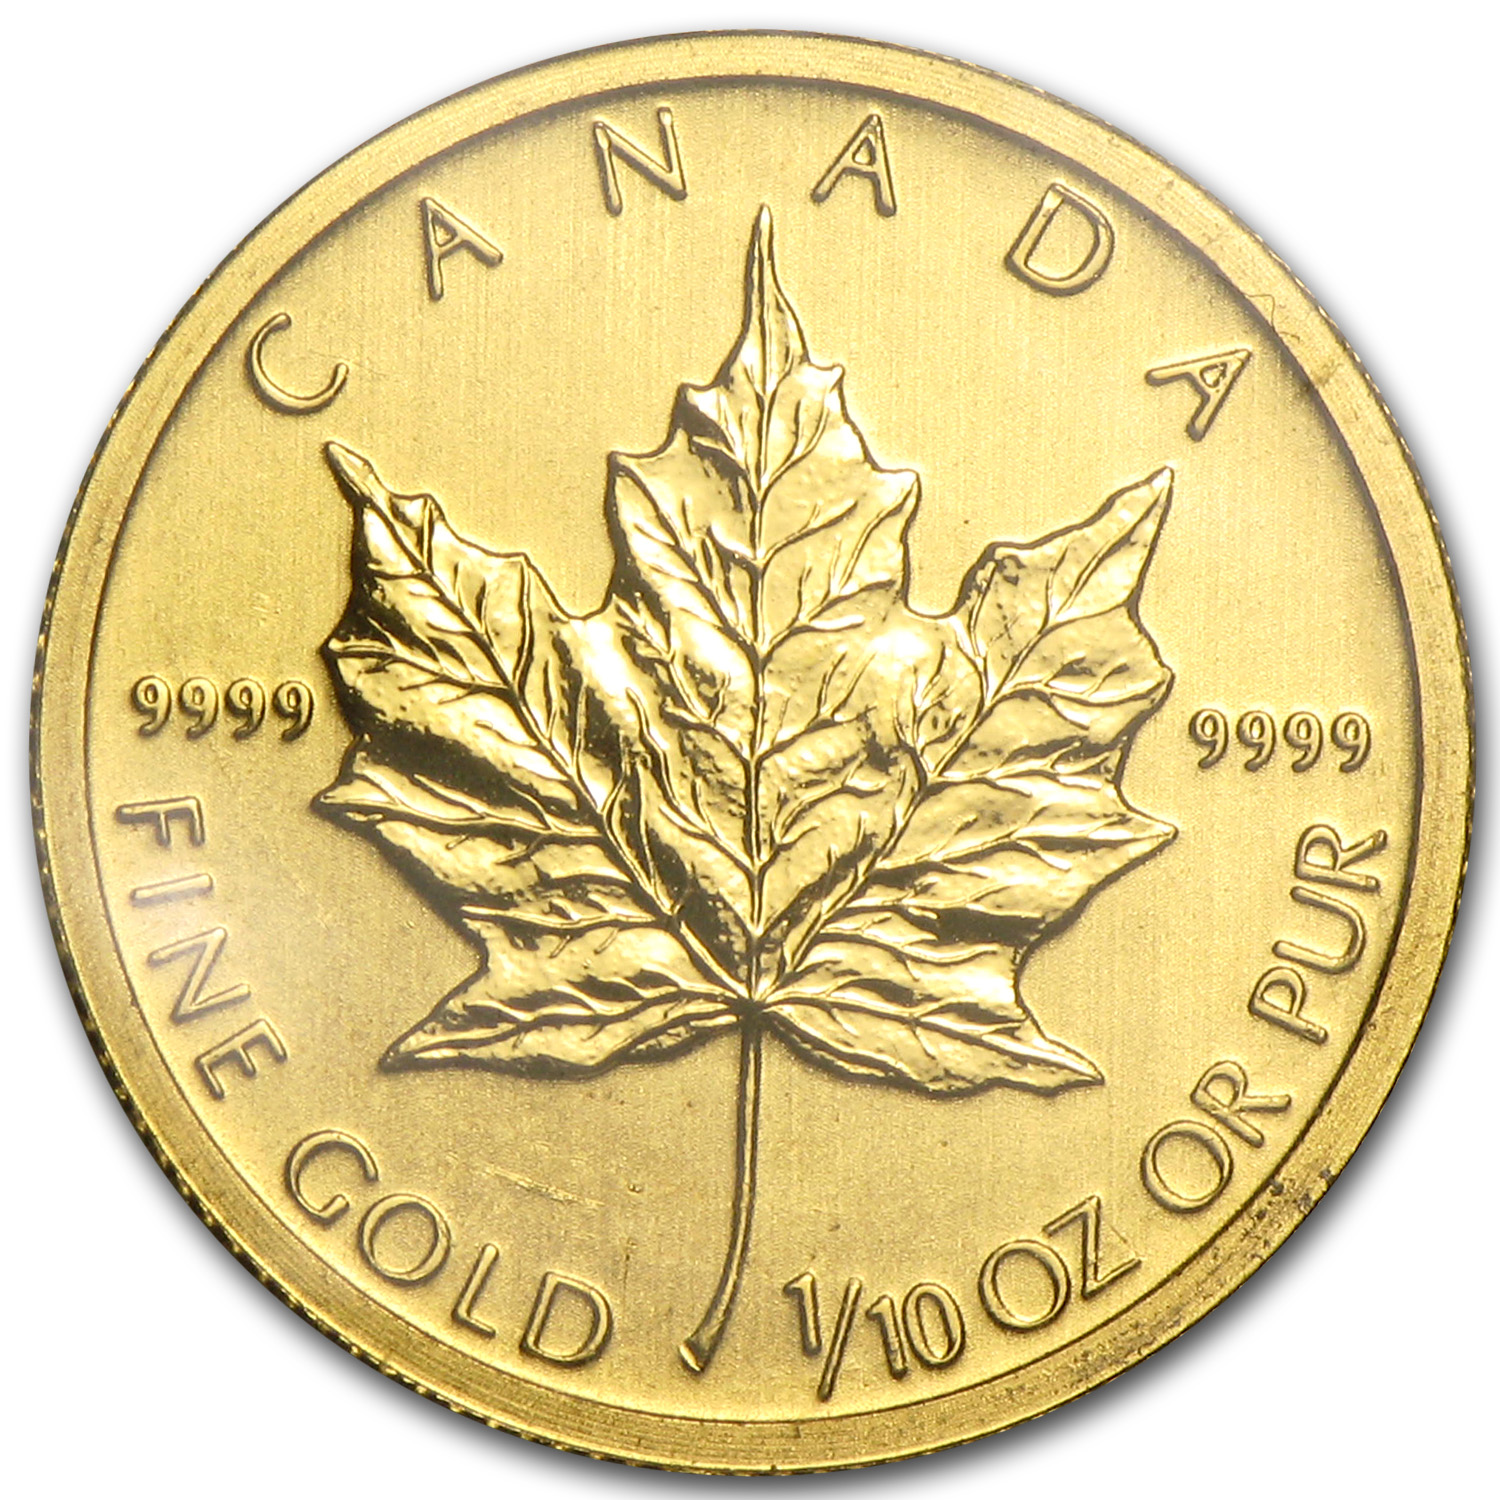 2011 Canada 1/10 oz Gold Maple Leaf BU